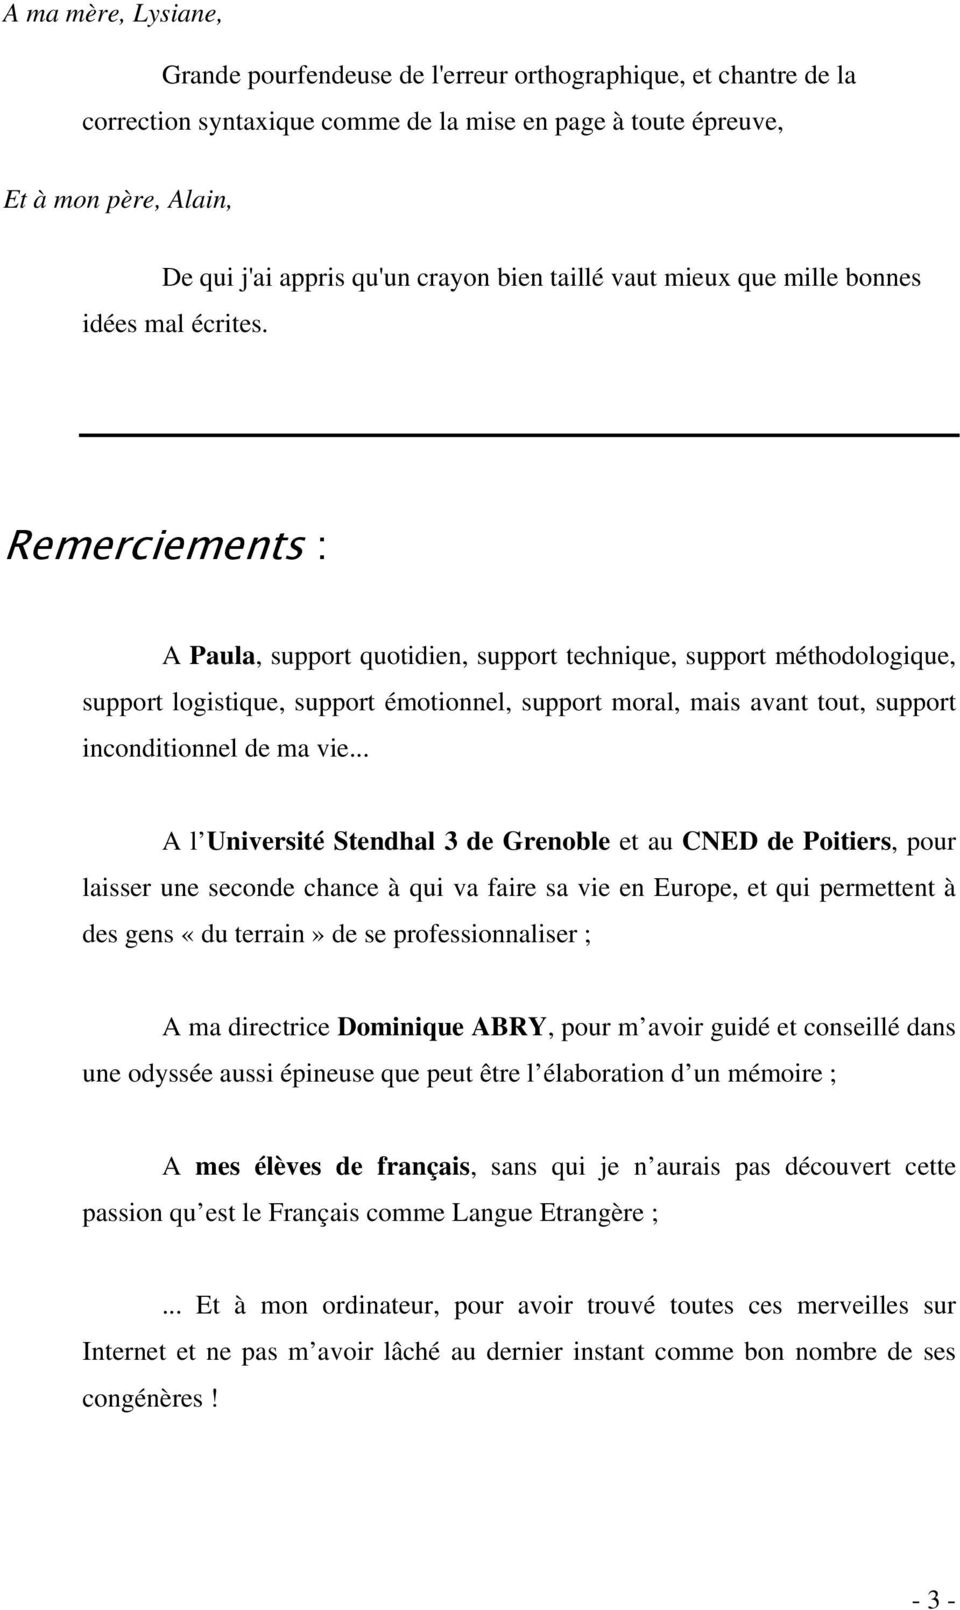 Remerciements : A Paula, support quotidien, support technique, support méthodologique, support logistique, support émotionnel, support moral, mais avant tout, support inconditionnel de ma vie.